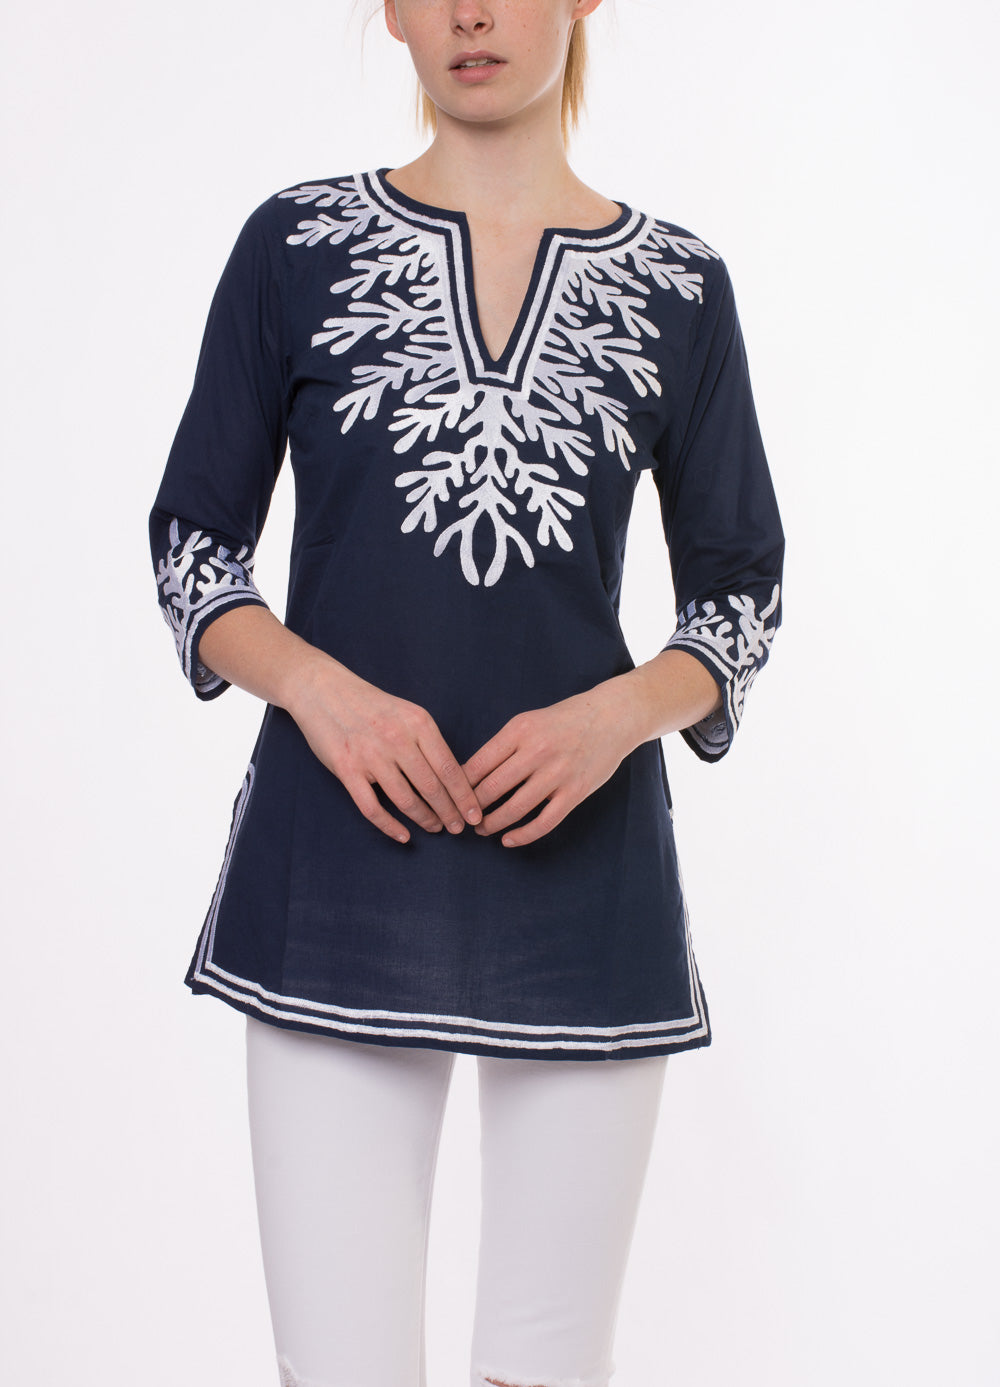 Reef Tunic (Style REEF-TUNIC, Navy/White) by Green Meem